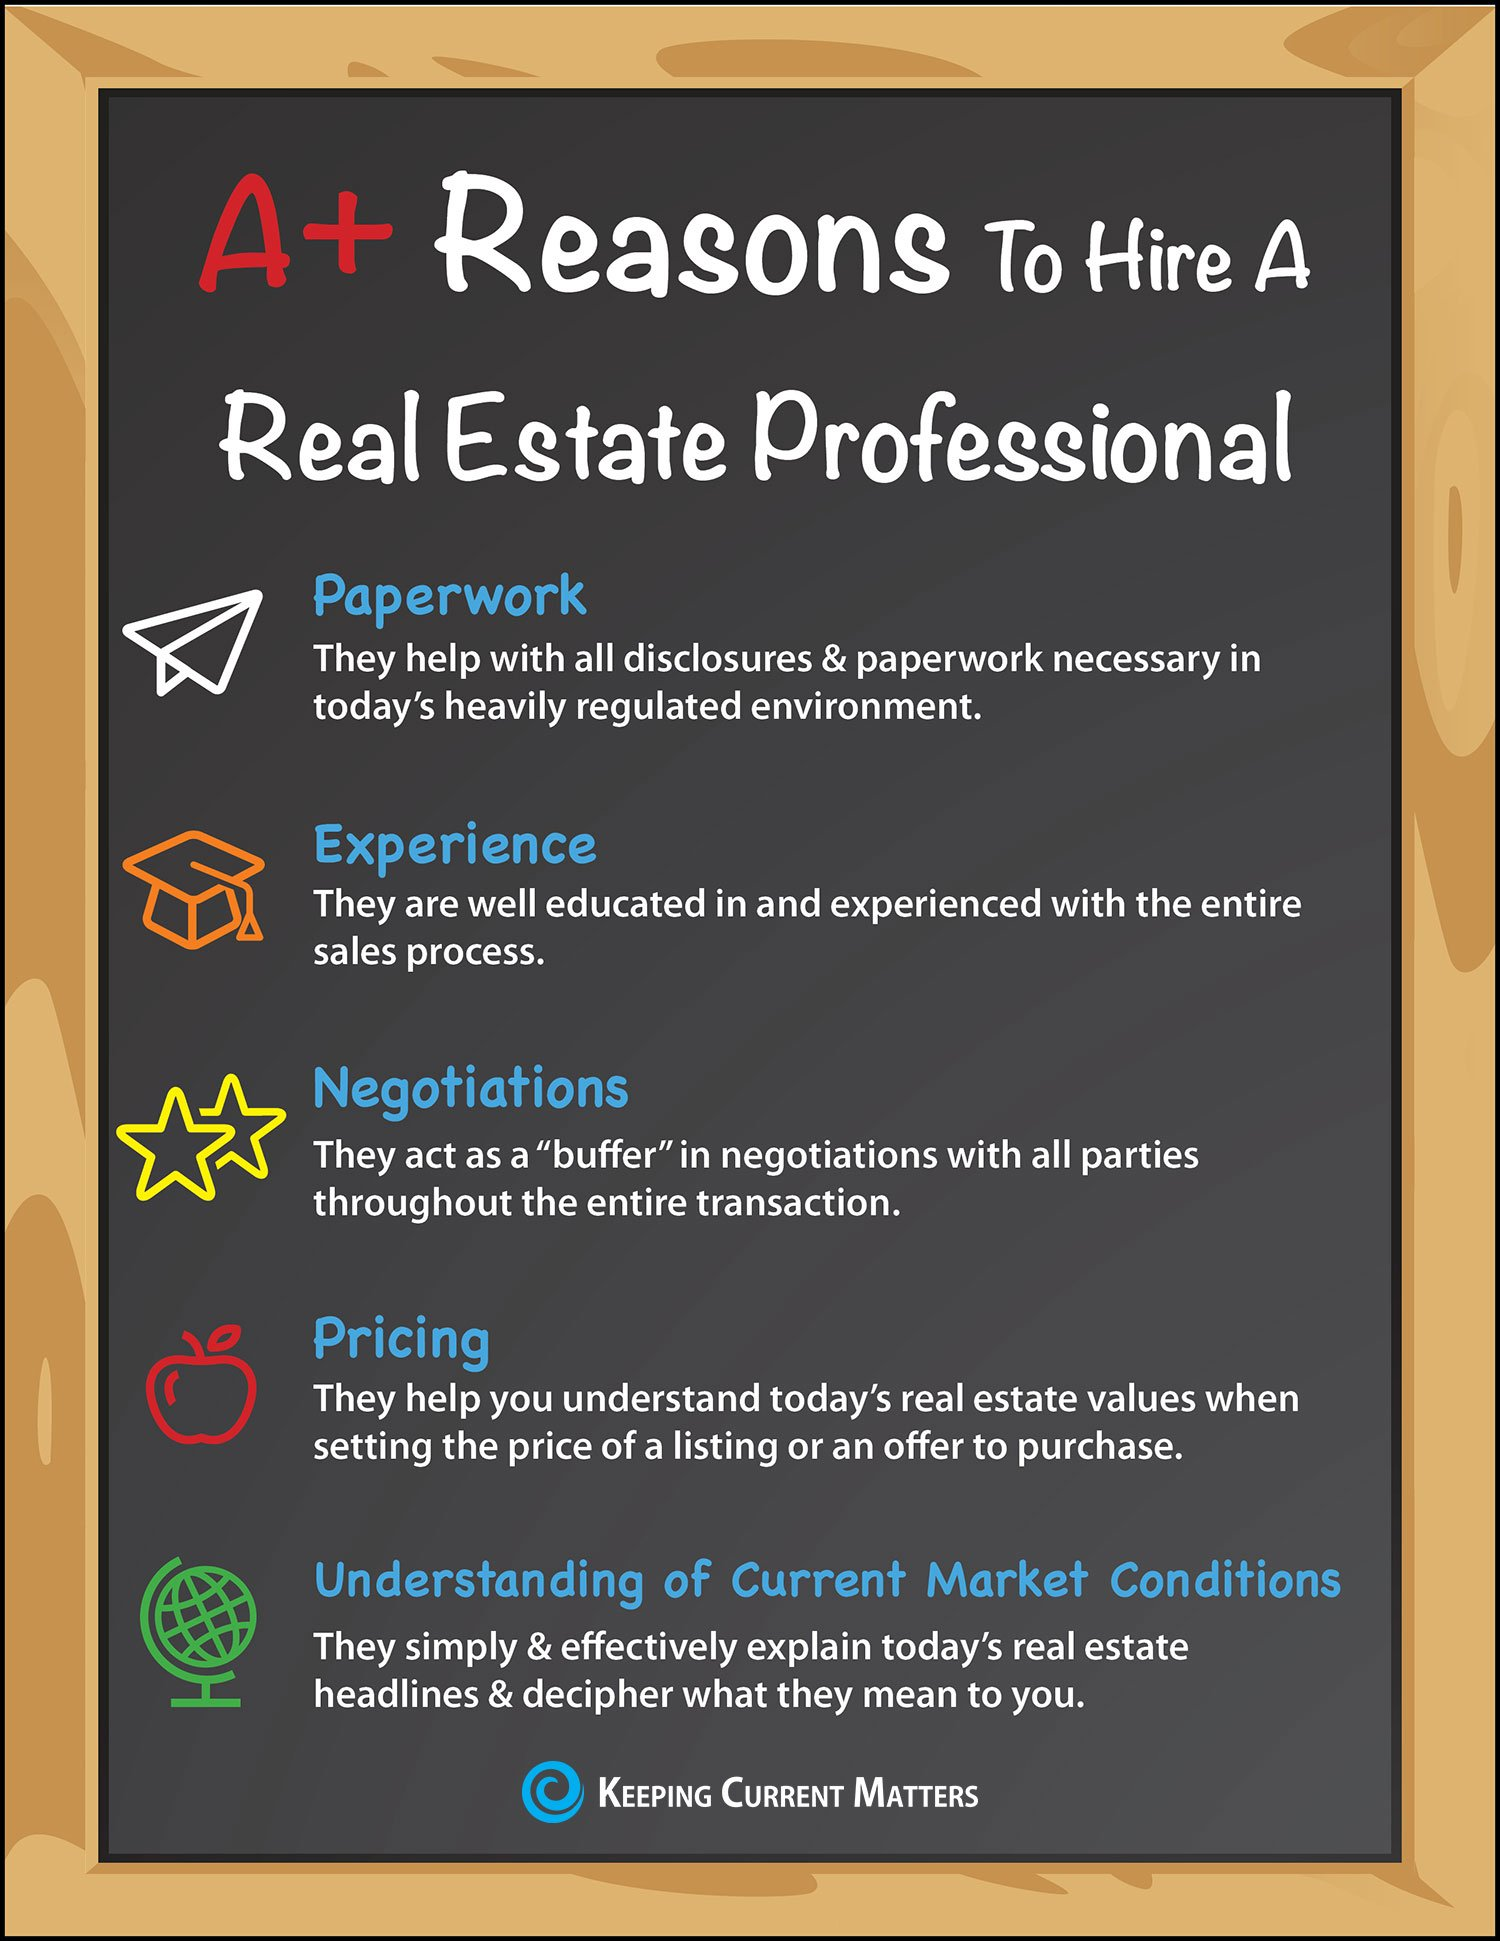 A+ Reasons to Hire a Real Estate Pro [INFOGRAPHIC] | Keeping Current Matters